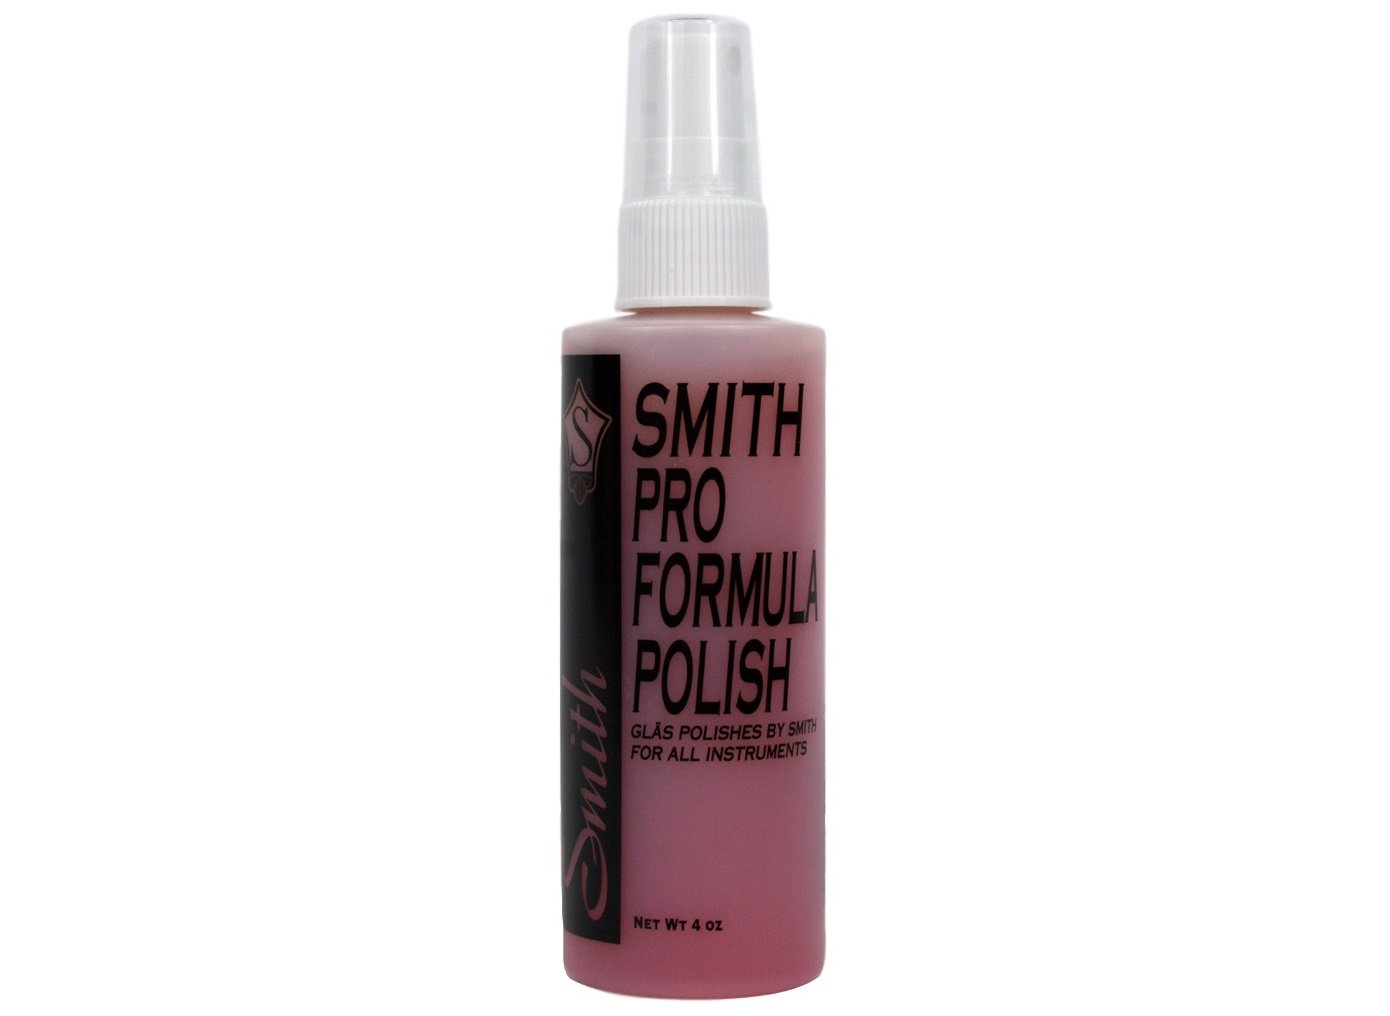 Smith Pro Polish 4oz